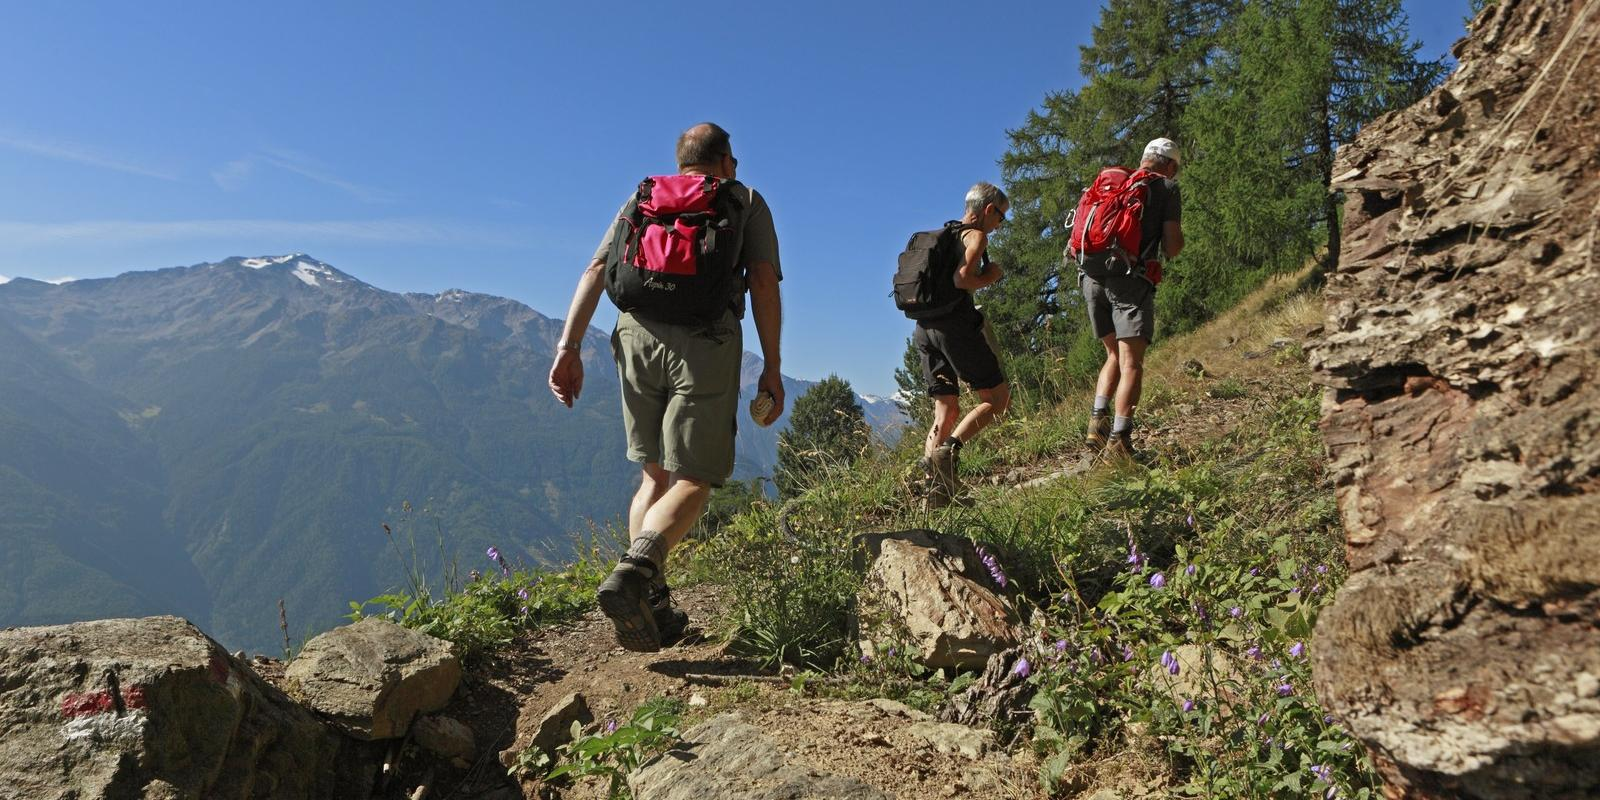 Hiking in the Vinschgau Valley